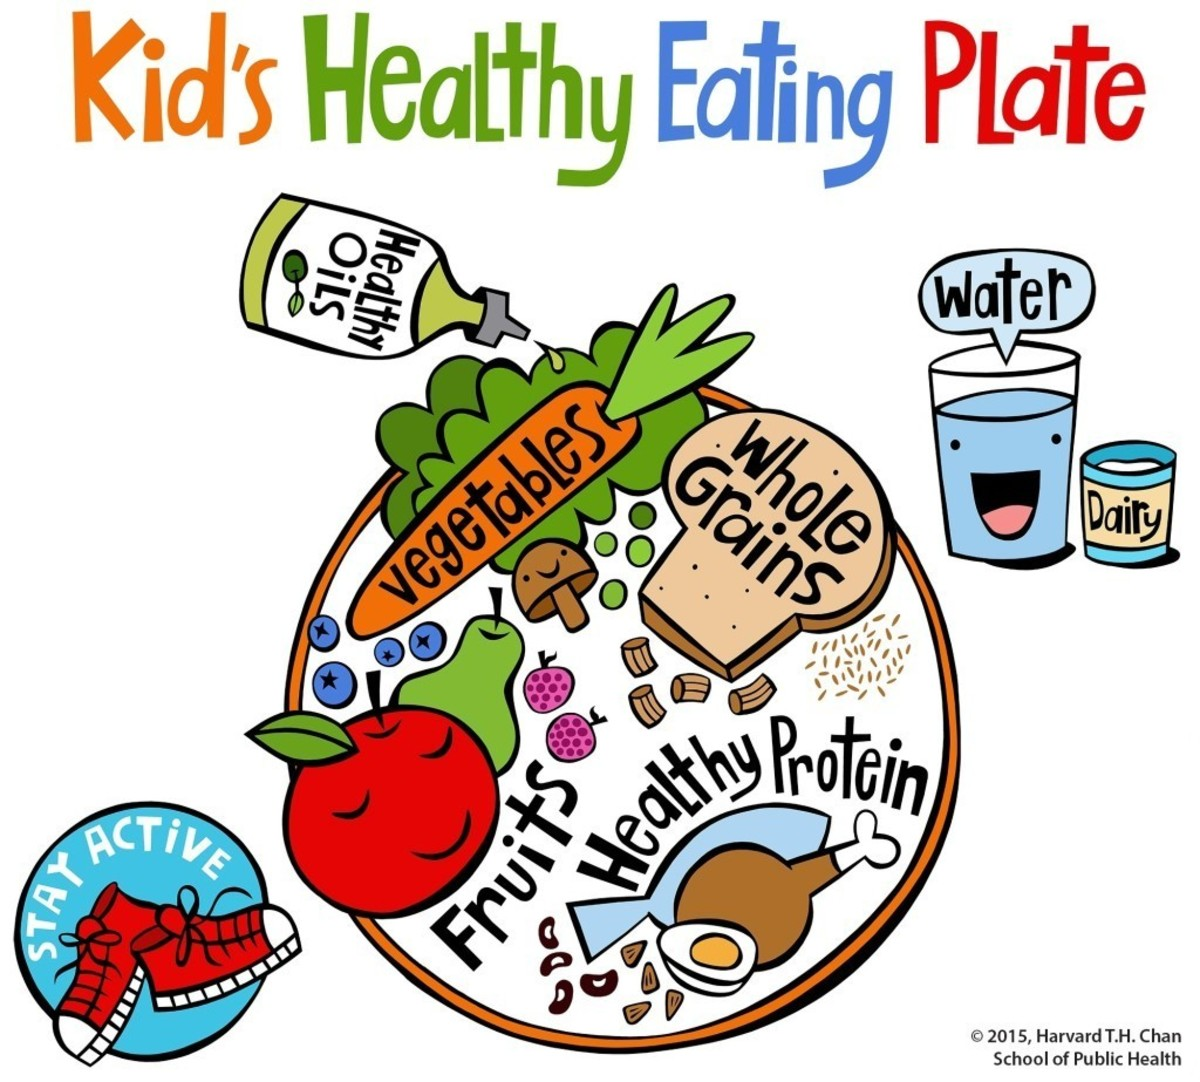 kidshealthyeatingplate_jan2016-1024x923